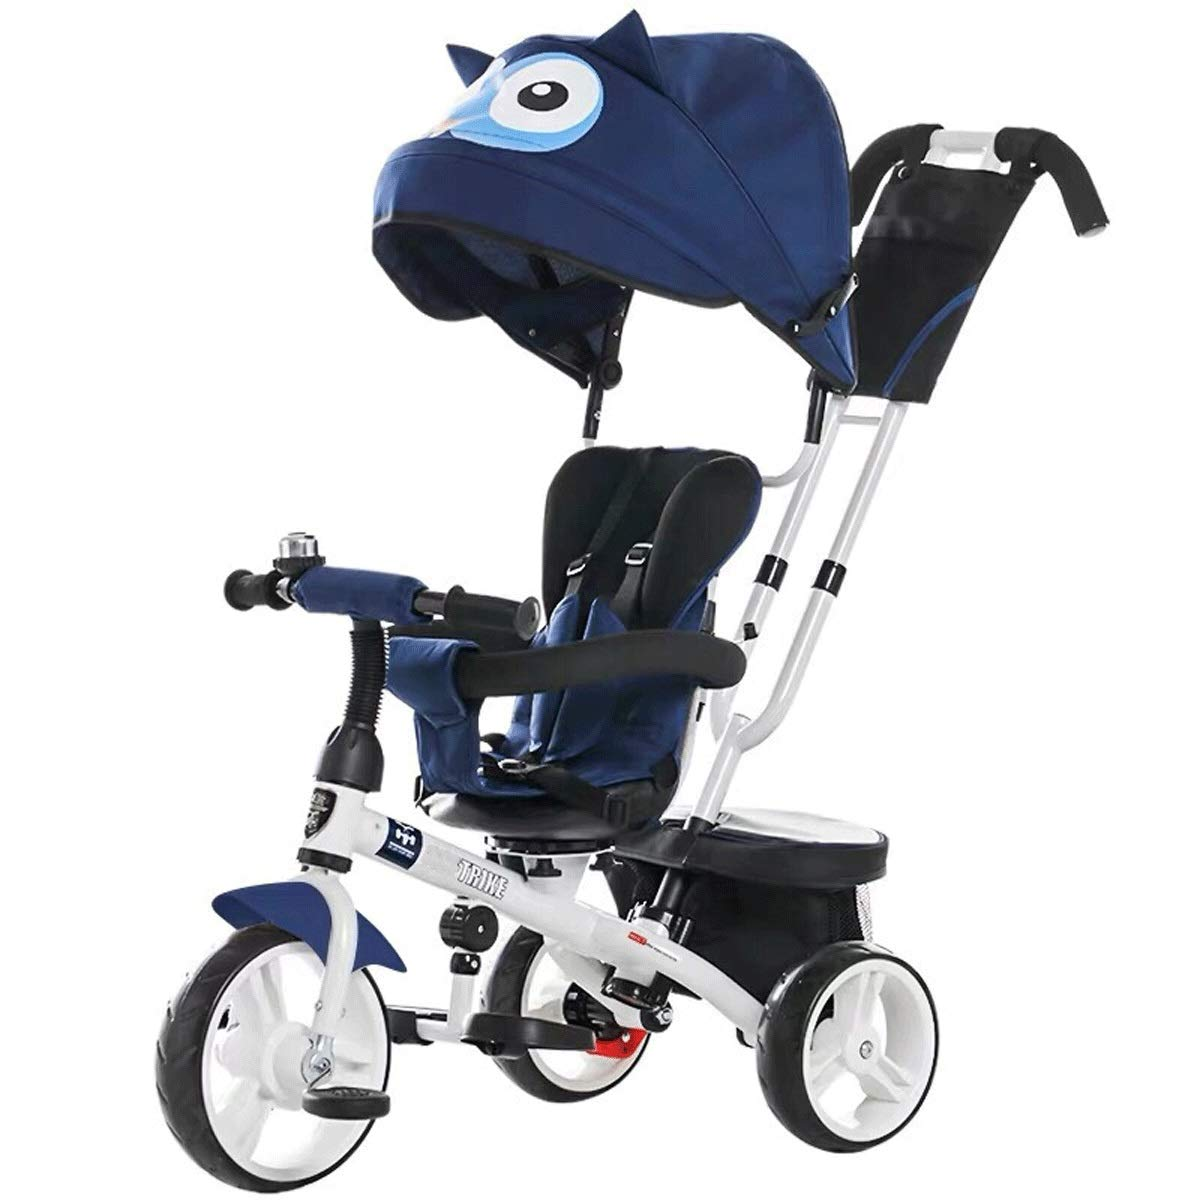 Baianju Cartoon Children's Tricycle Seat Rotation Two-Way Stroller Kids Bicycle Trolley